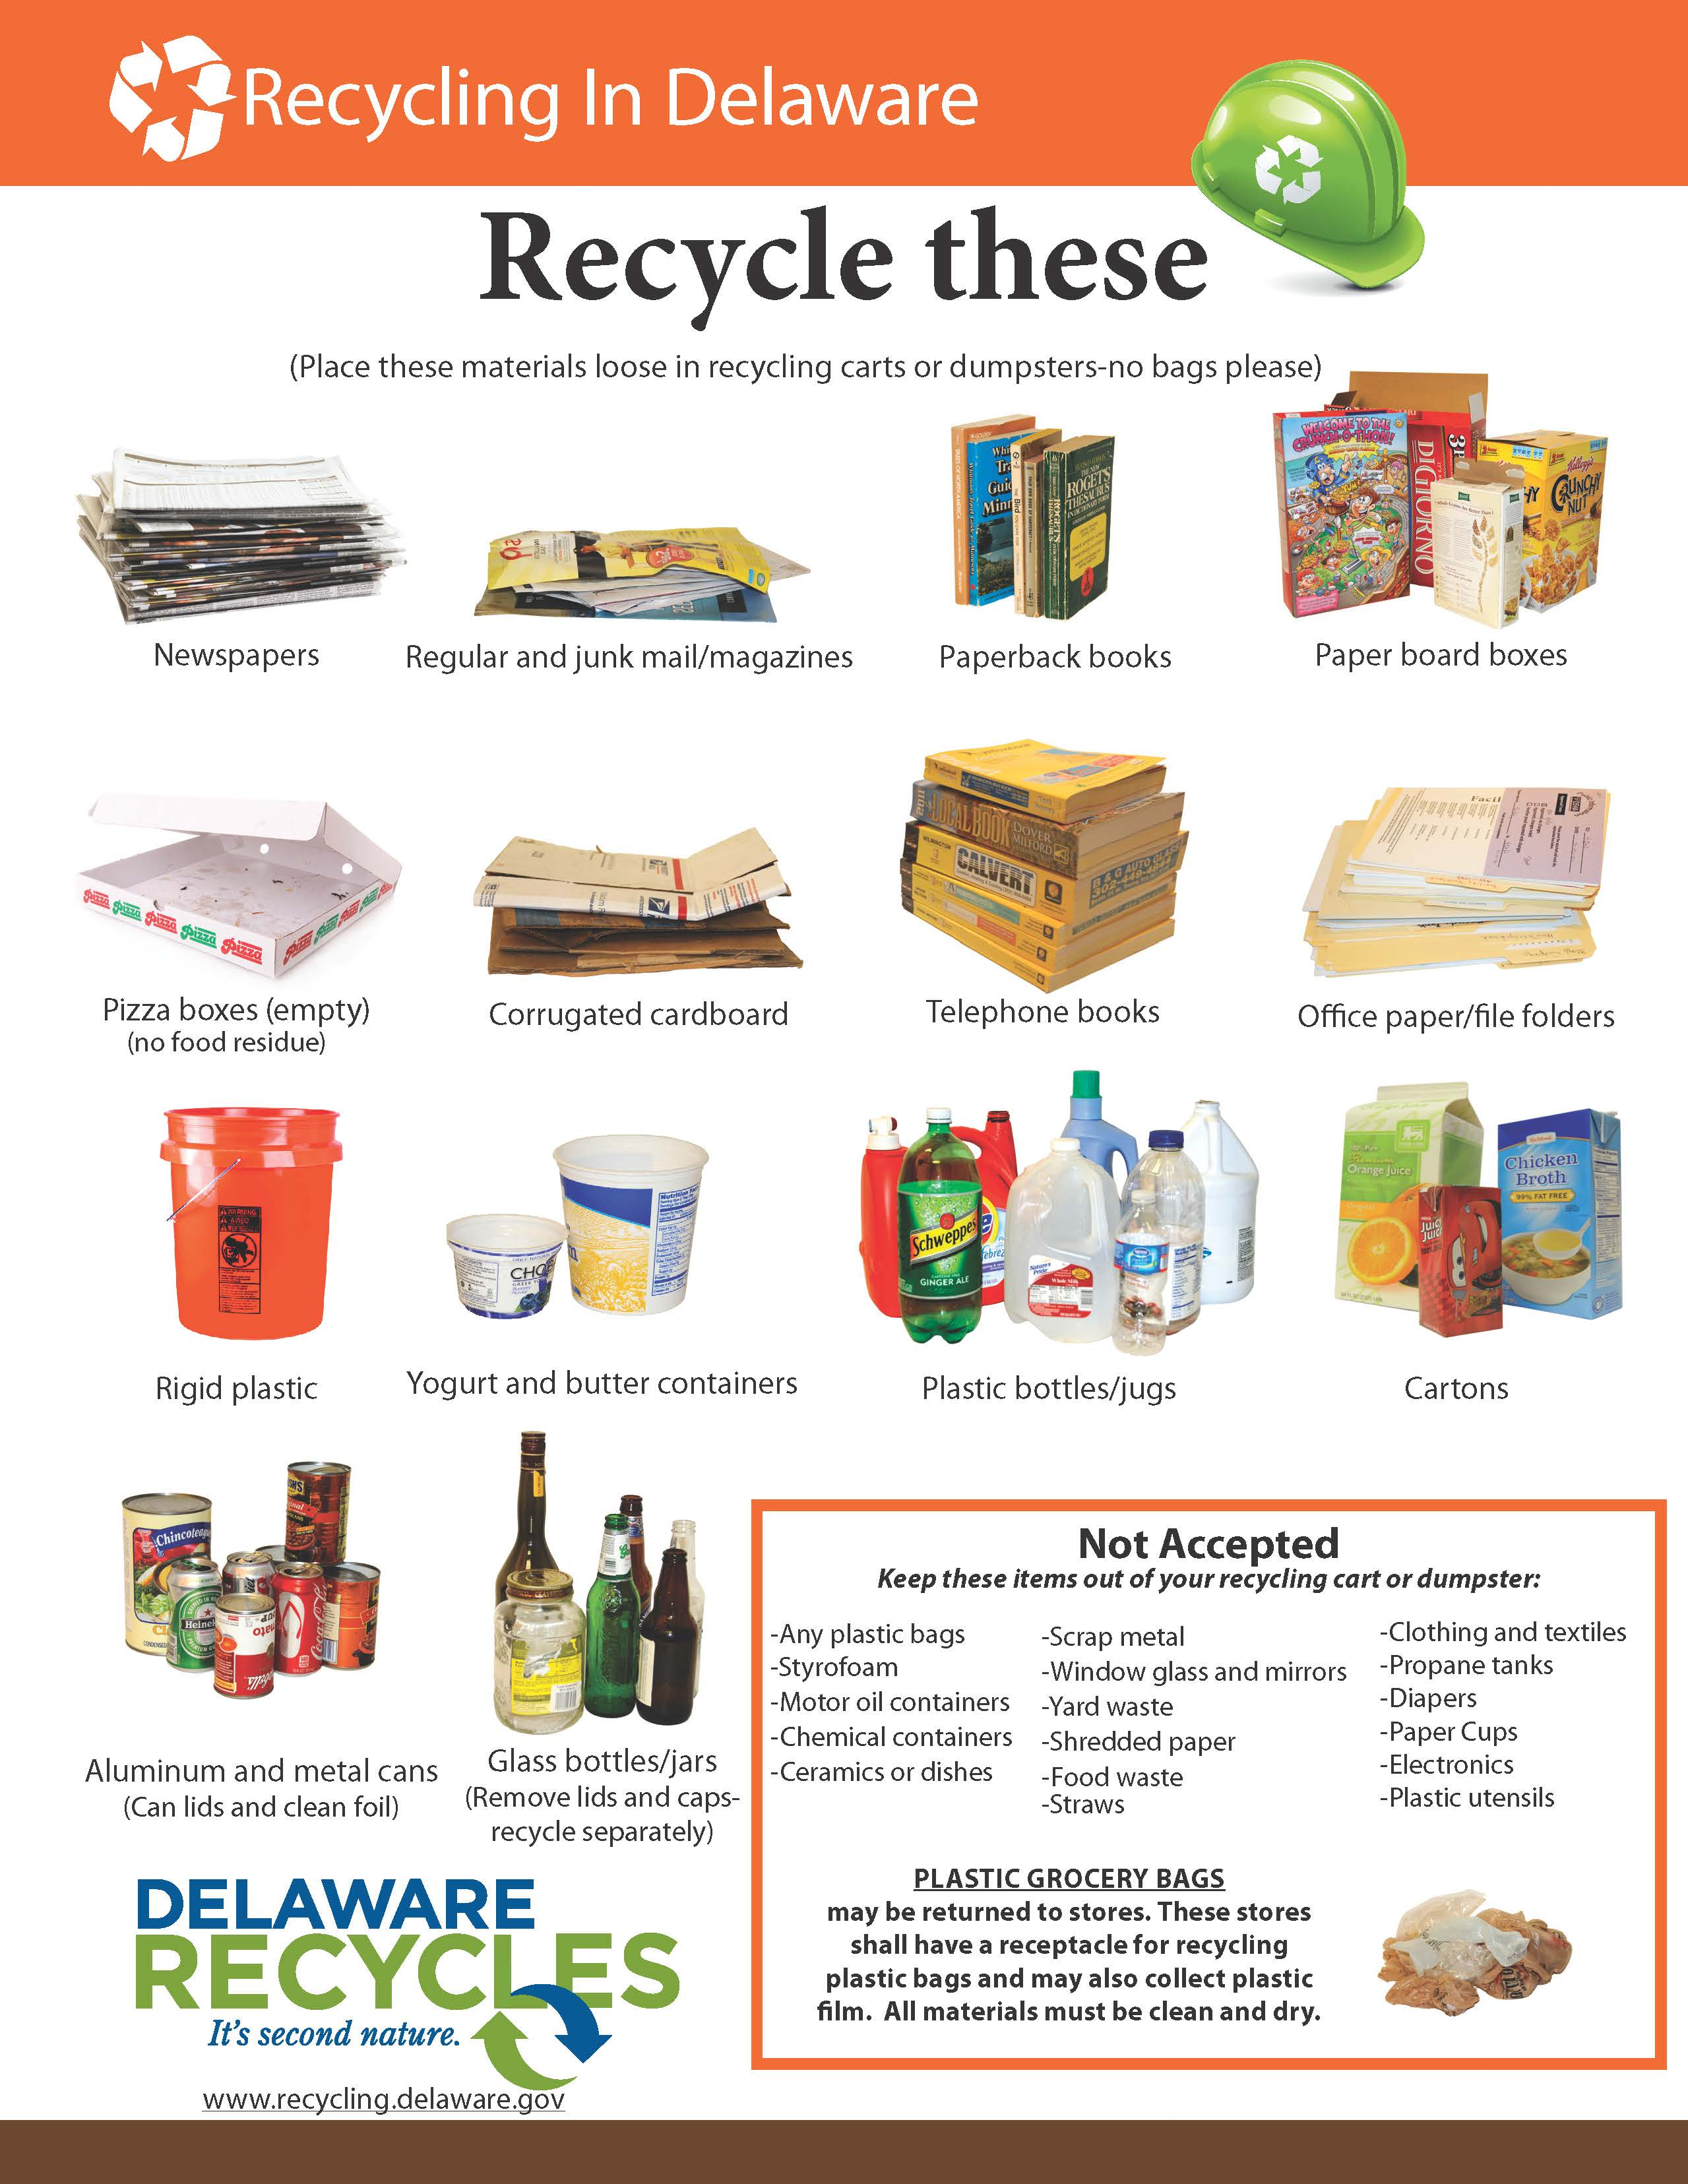 Delaware Recycling Guidelines